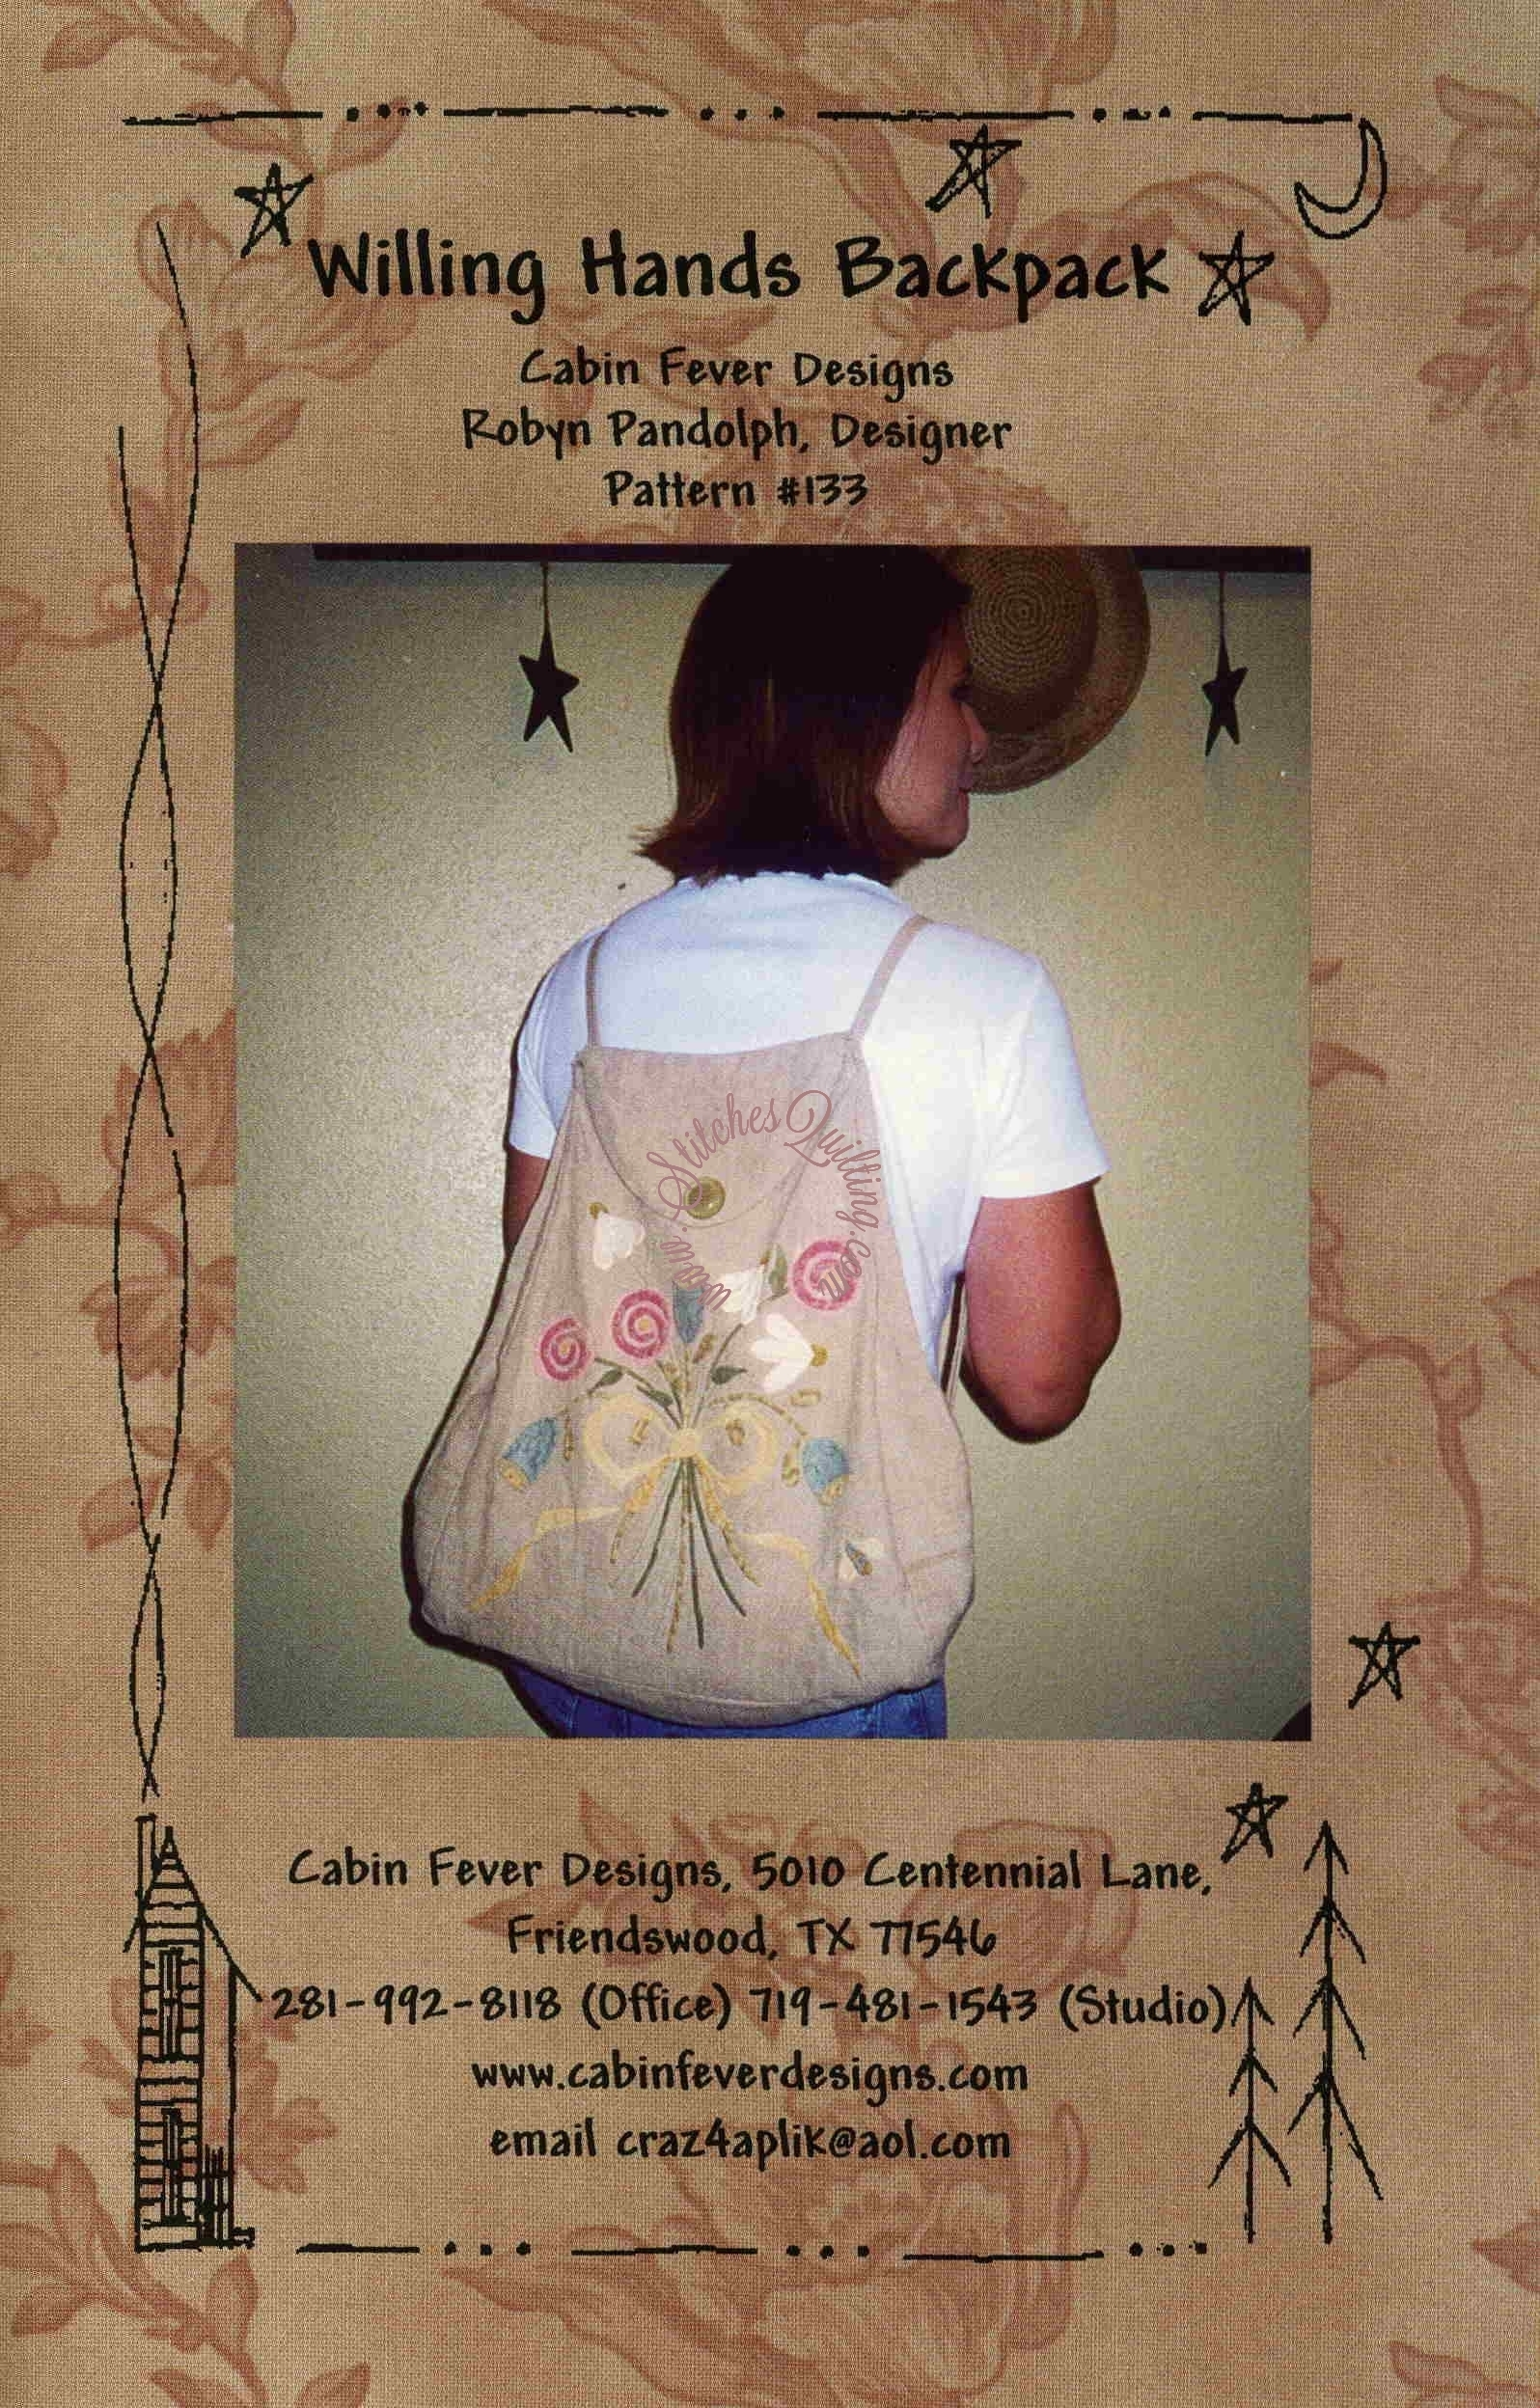 Willing Hs Backpack Cabin Fever Designs Robyn Pandolph